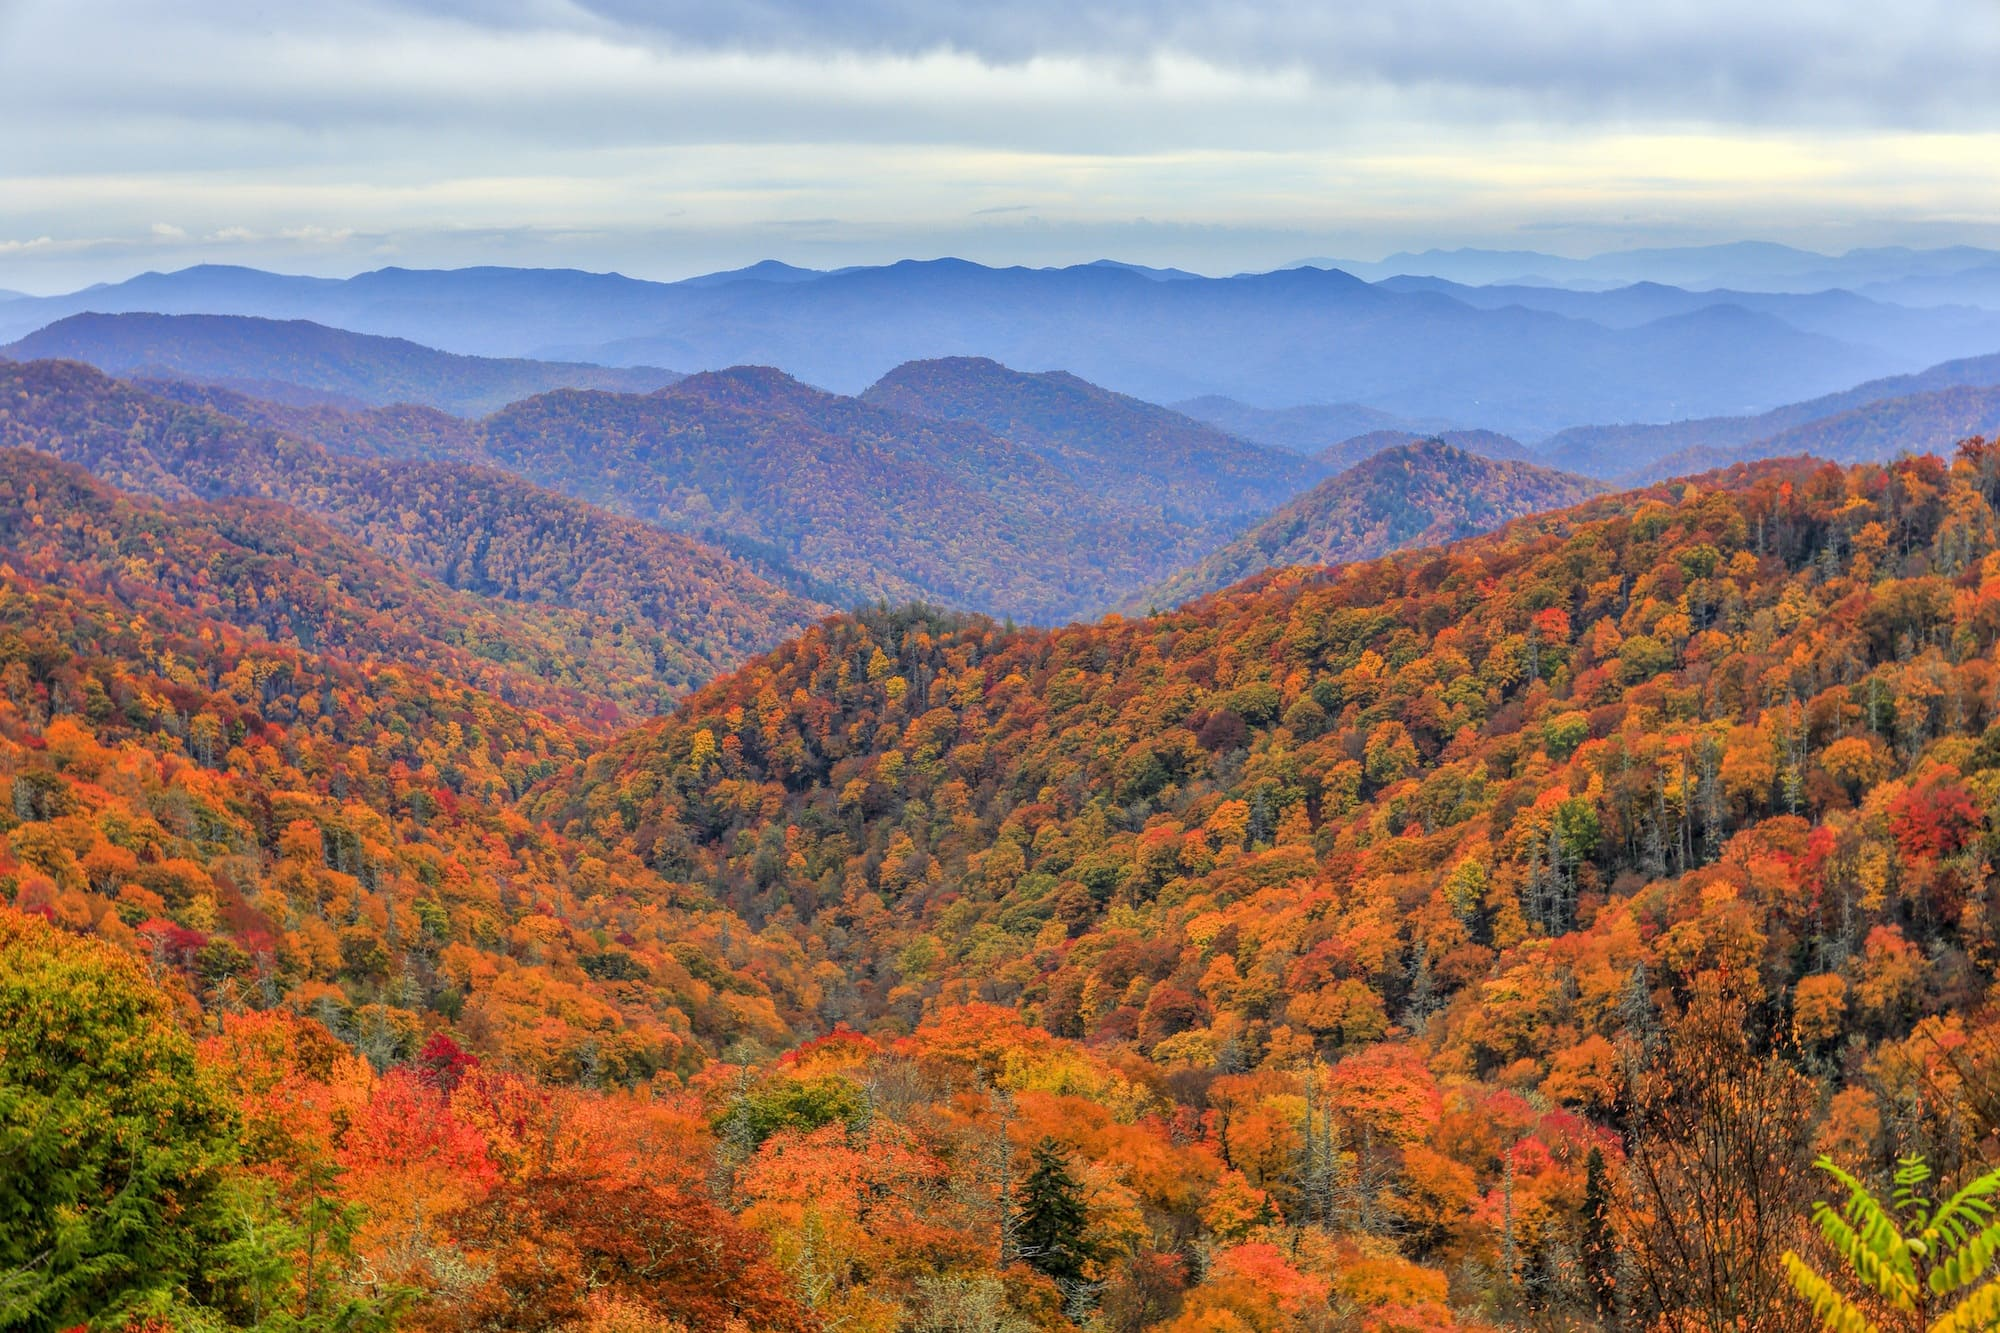 Great Smoky Mountains // Discover the best National Parks to visit during fall for the best leaf-peeping vacation. Get tips on hikes, scenic drives, and more.